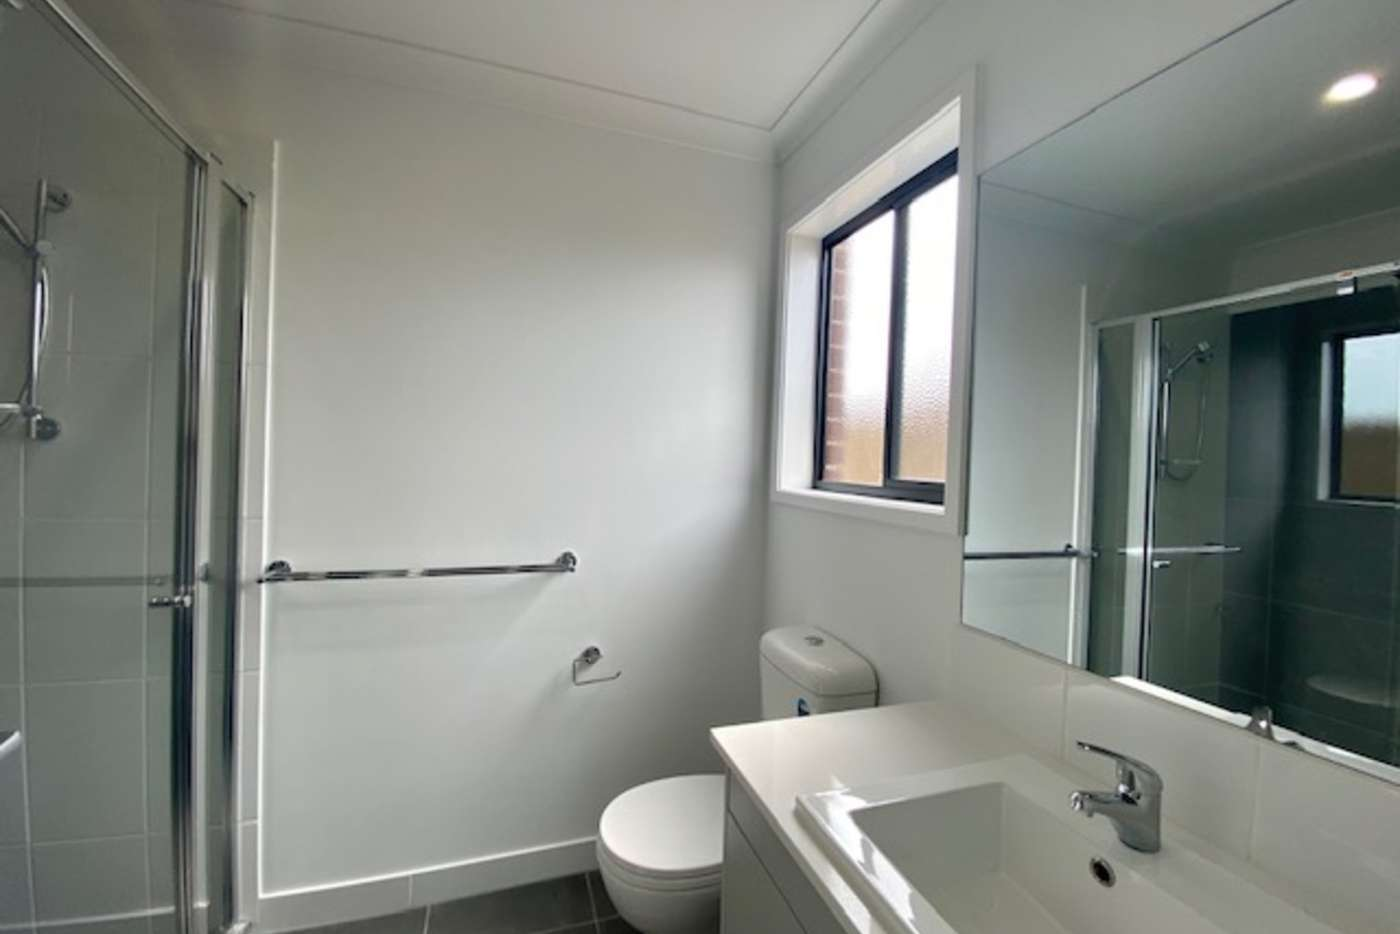 Seventh view of Homely house listing, 15 Boxer Drive, Wyndham Vale VIC 3024